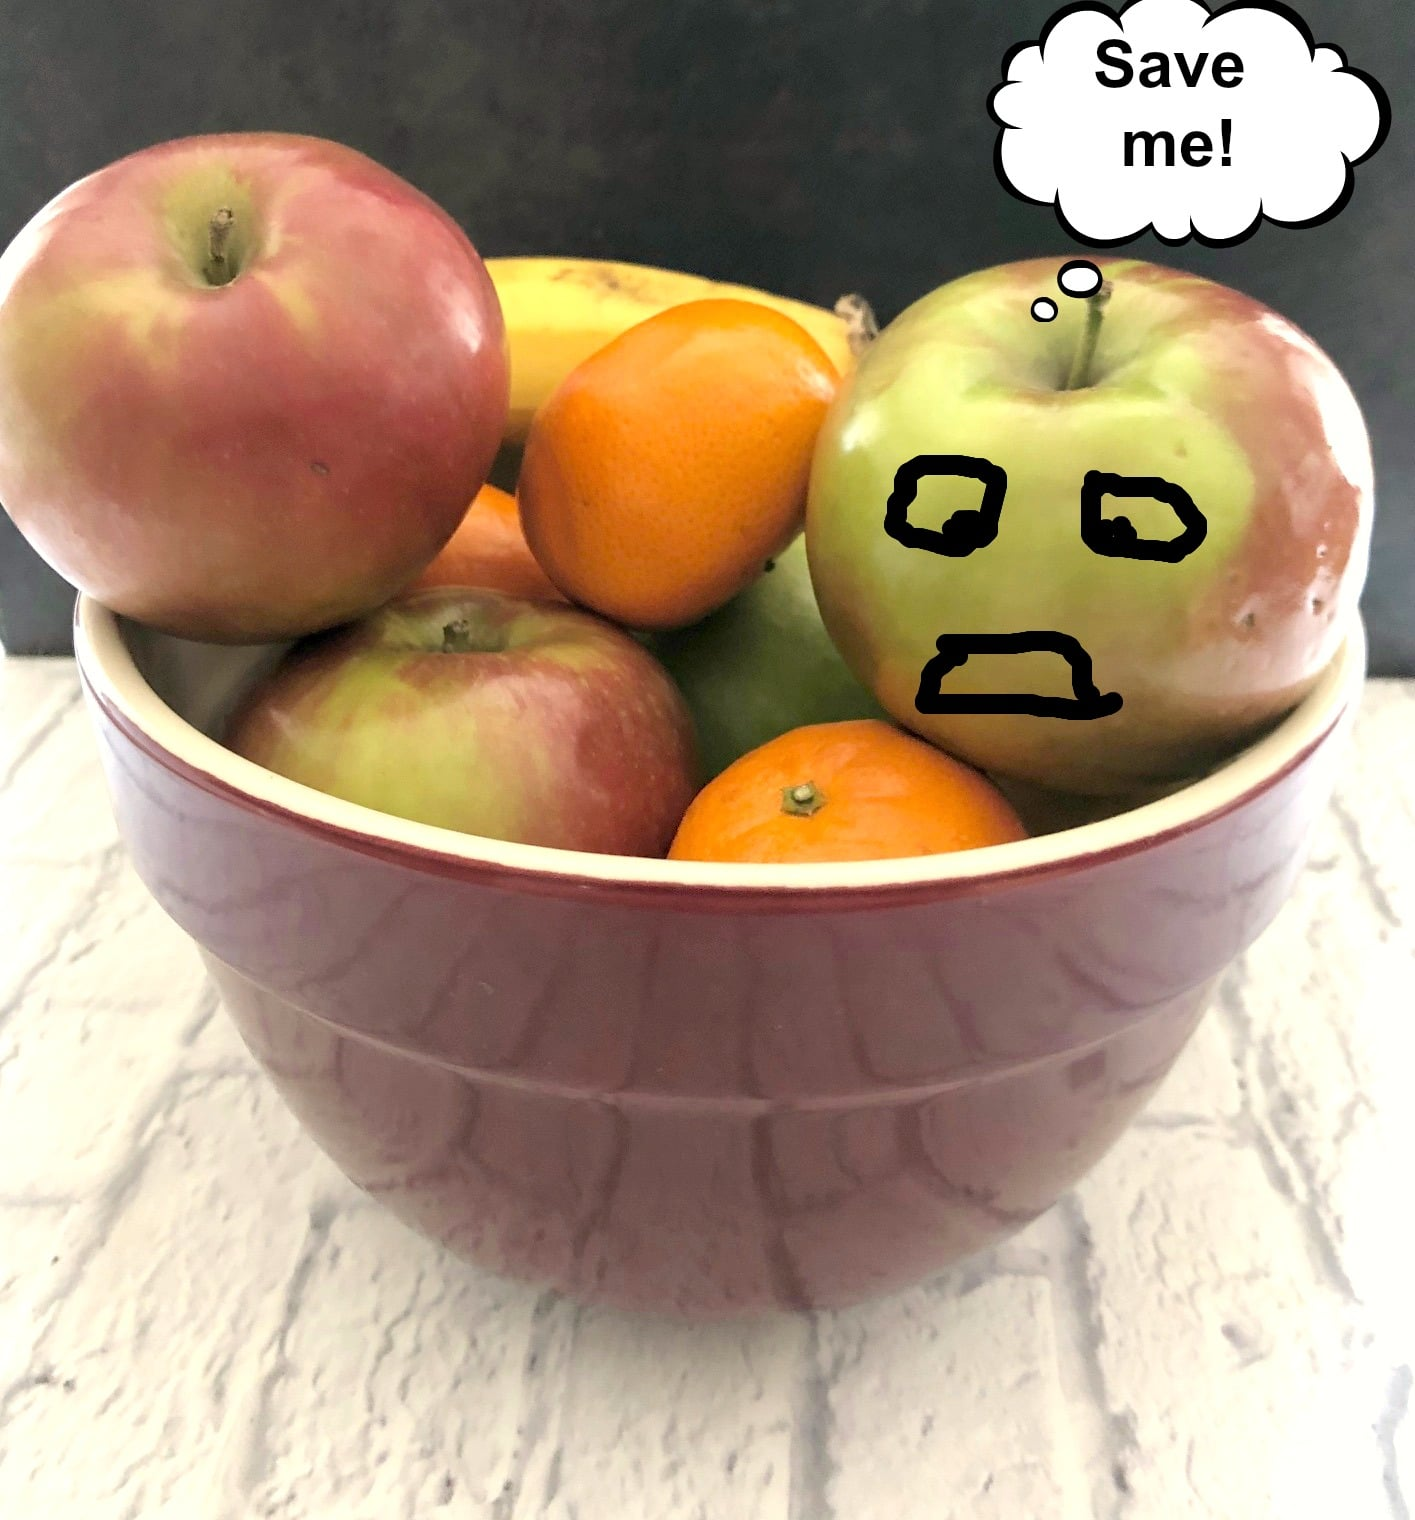 Fruit in a bowl with a word bubble from the apple saying 'save me' and black hand drawn distressed face on apple